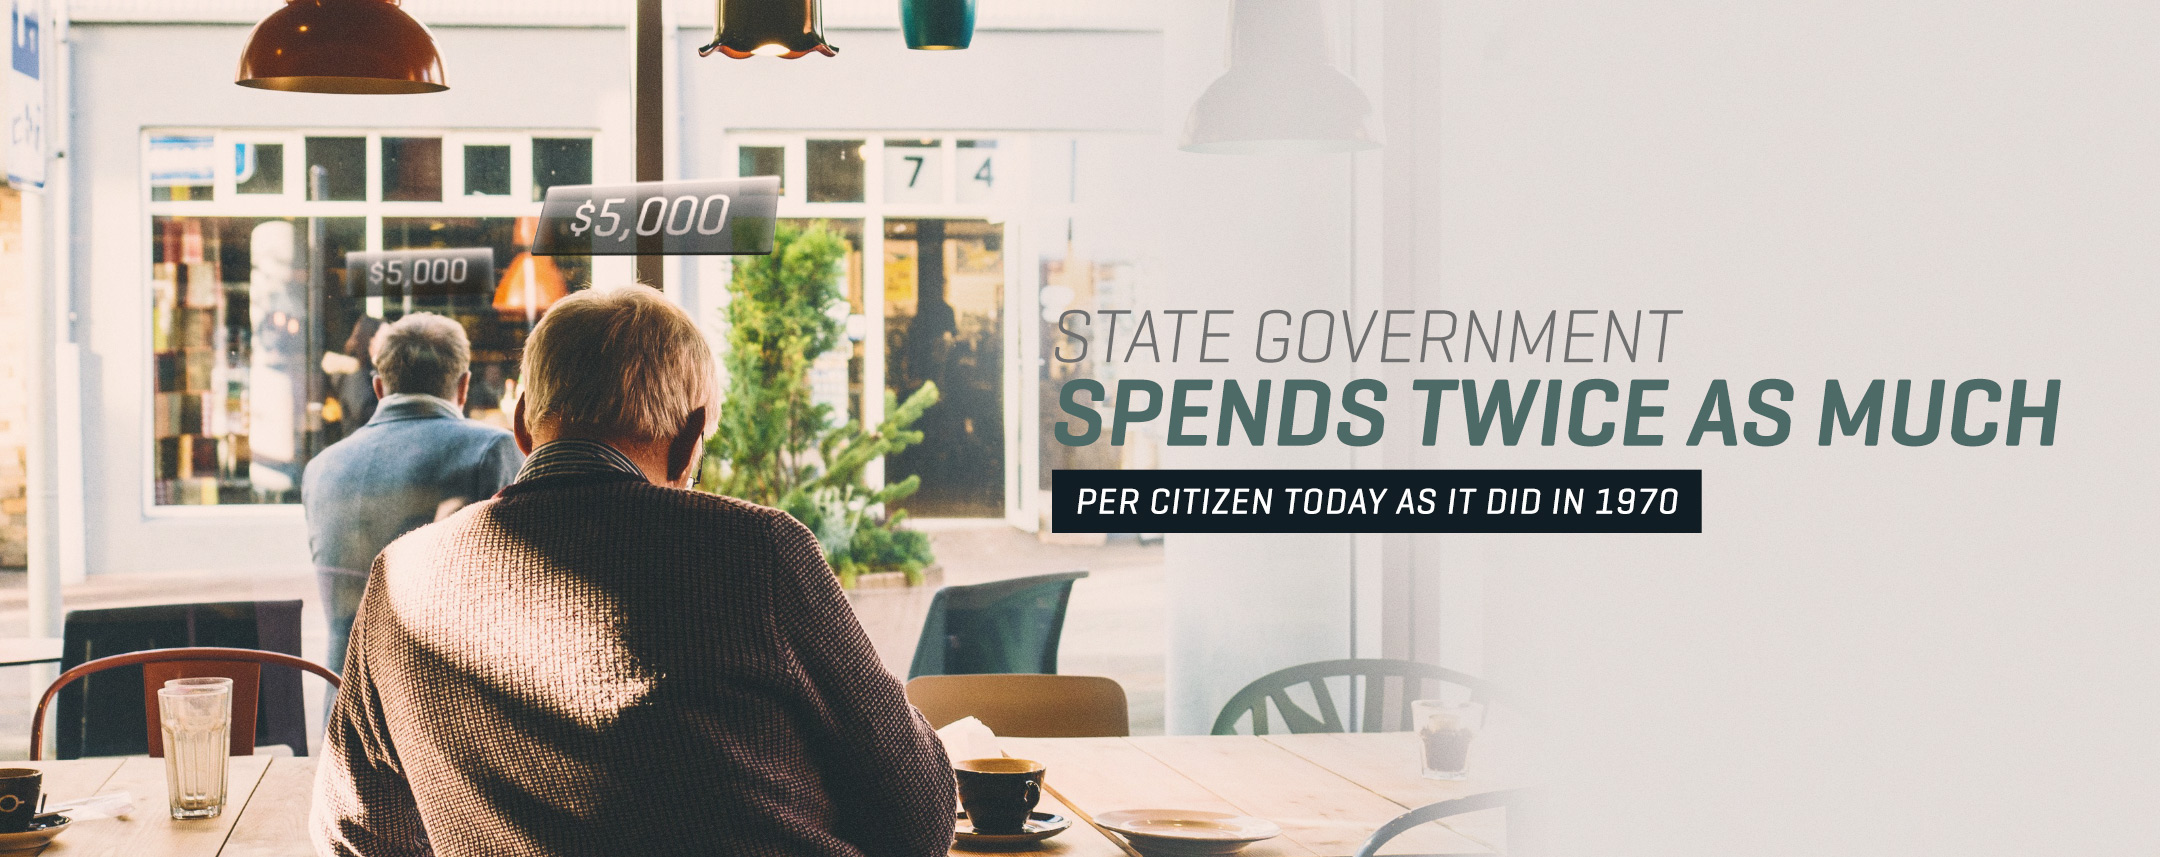 State-Spending-FEATURED.jpg